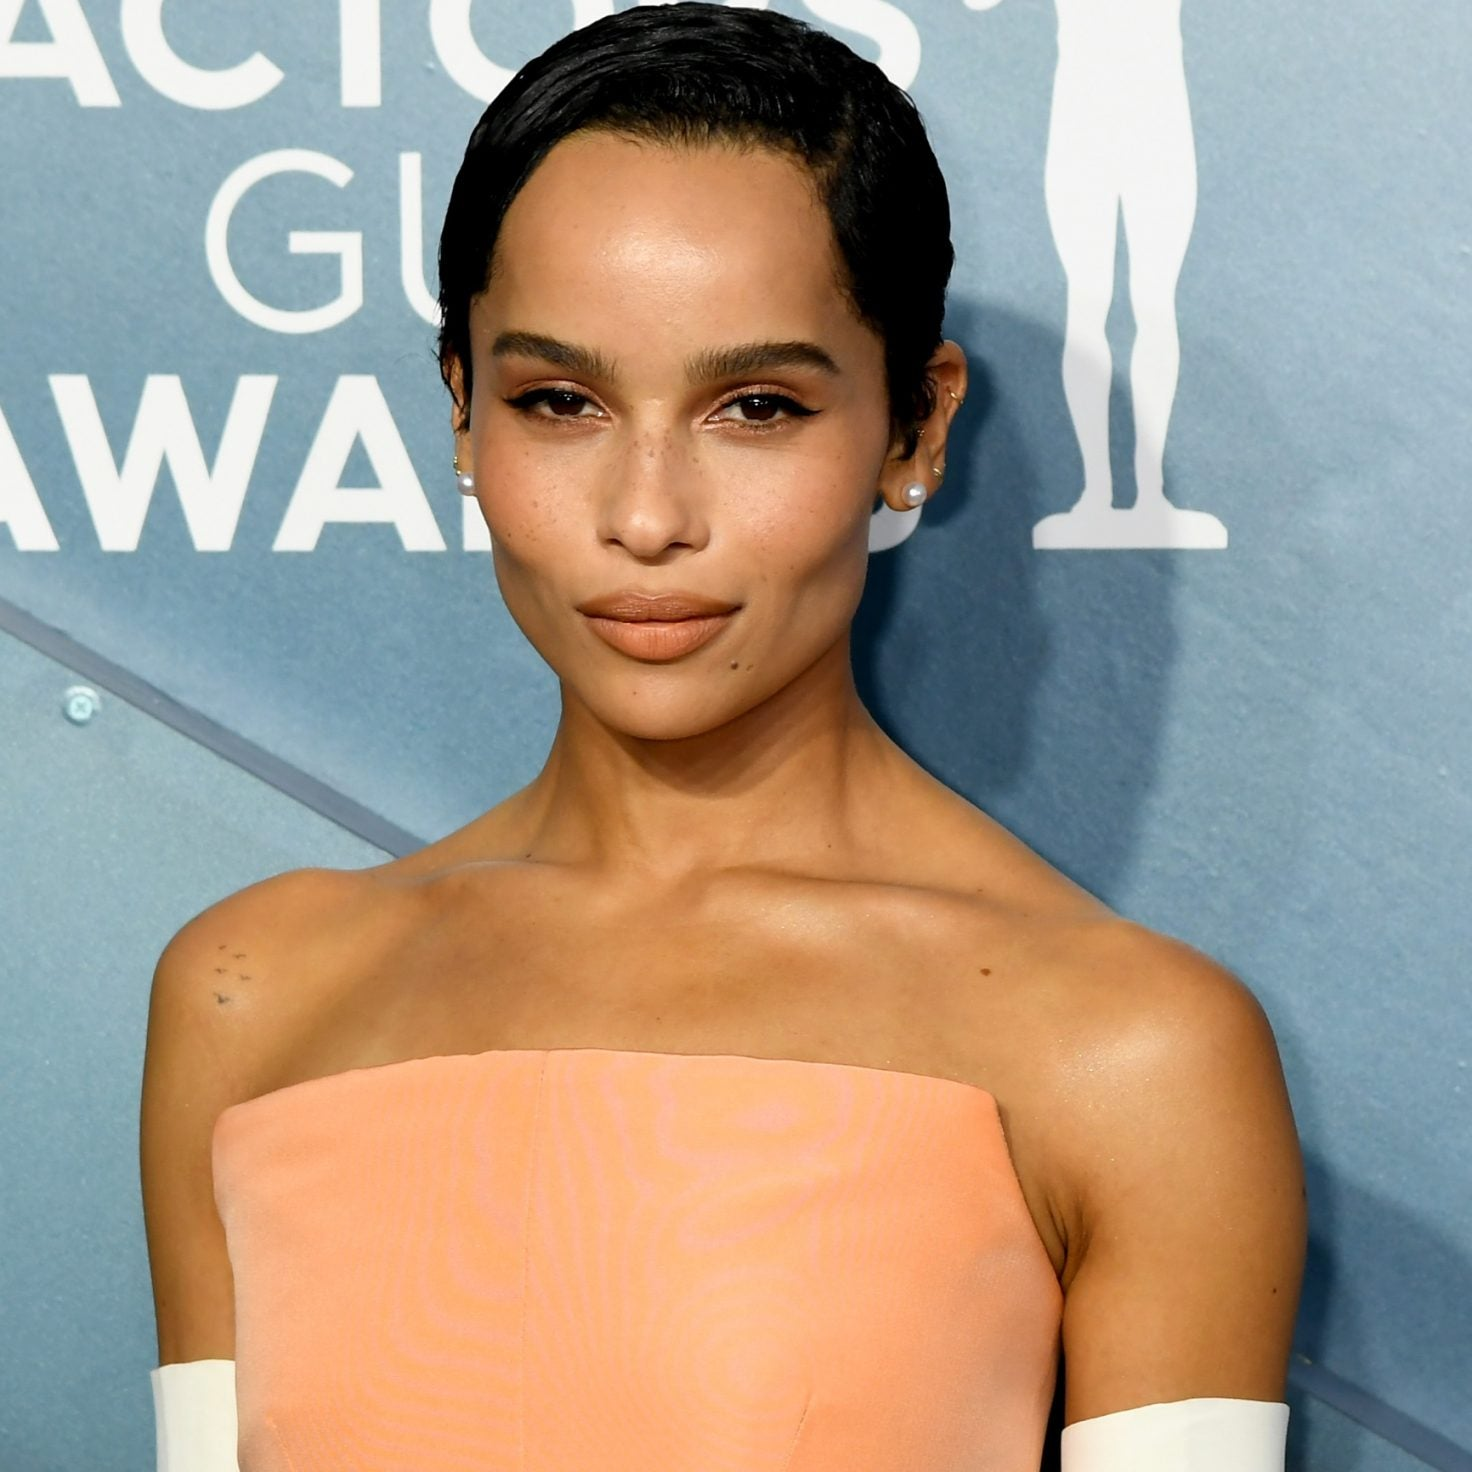 Zoe Kravitz Is The Gift That Keeps On Giving